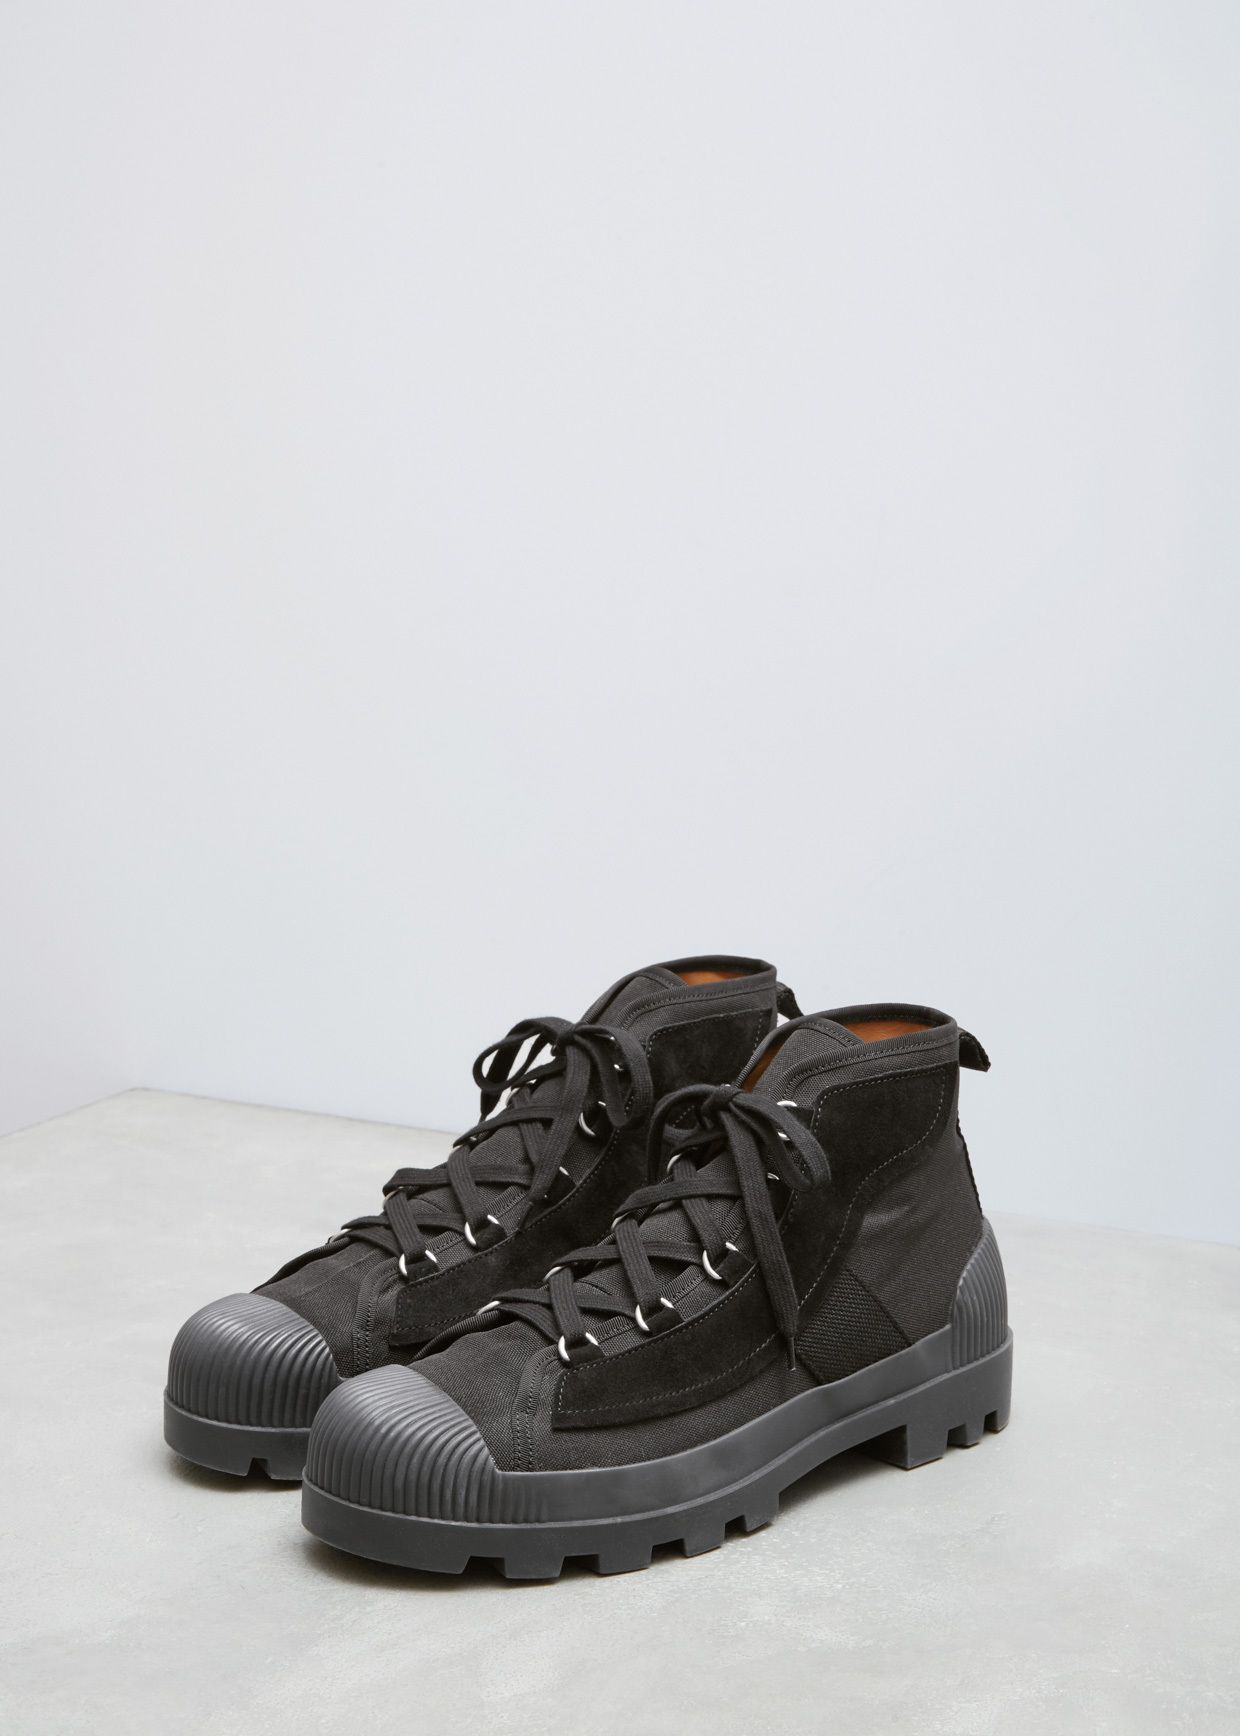 8ff47f44004 Acne Studios Daniel Boot (Black / Black) | Clothes | Boots, Shoe ...